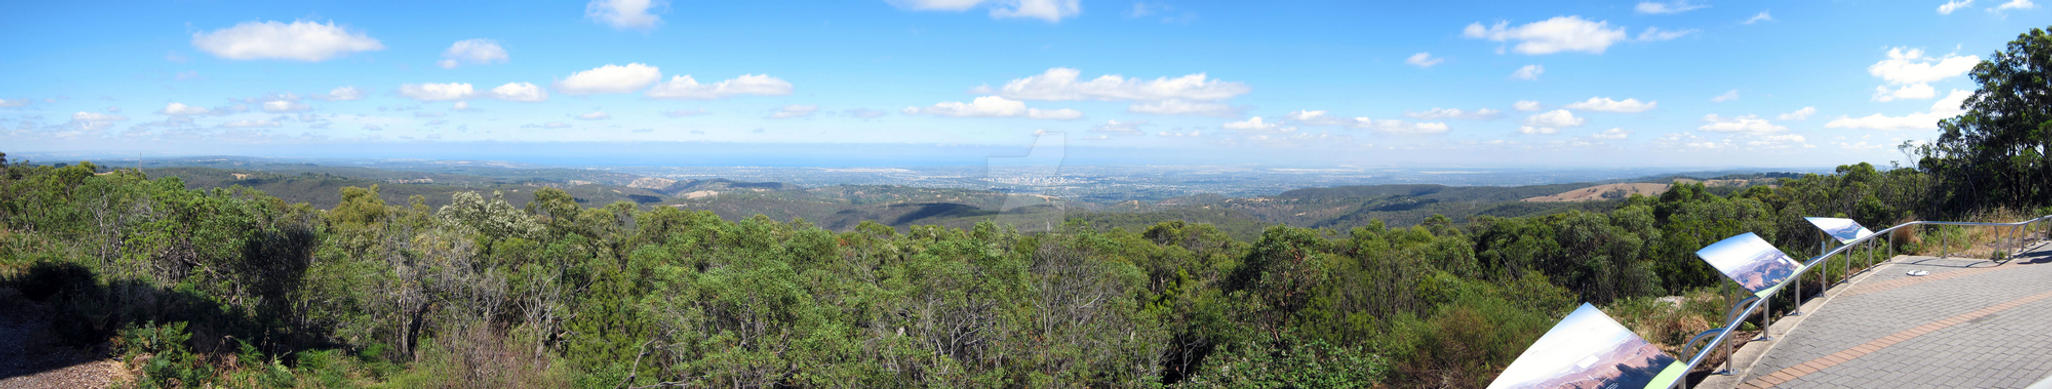 View of Adelaide from Mount Lofty December 2015